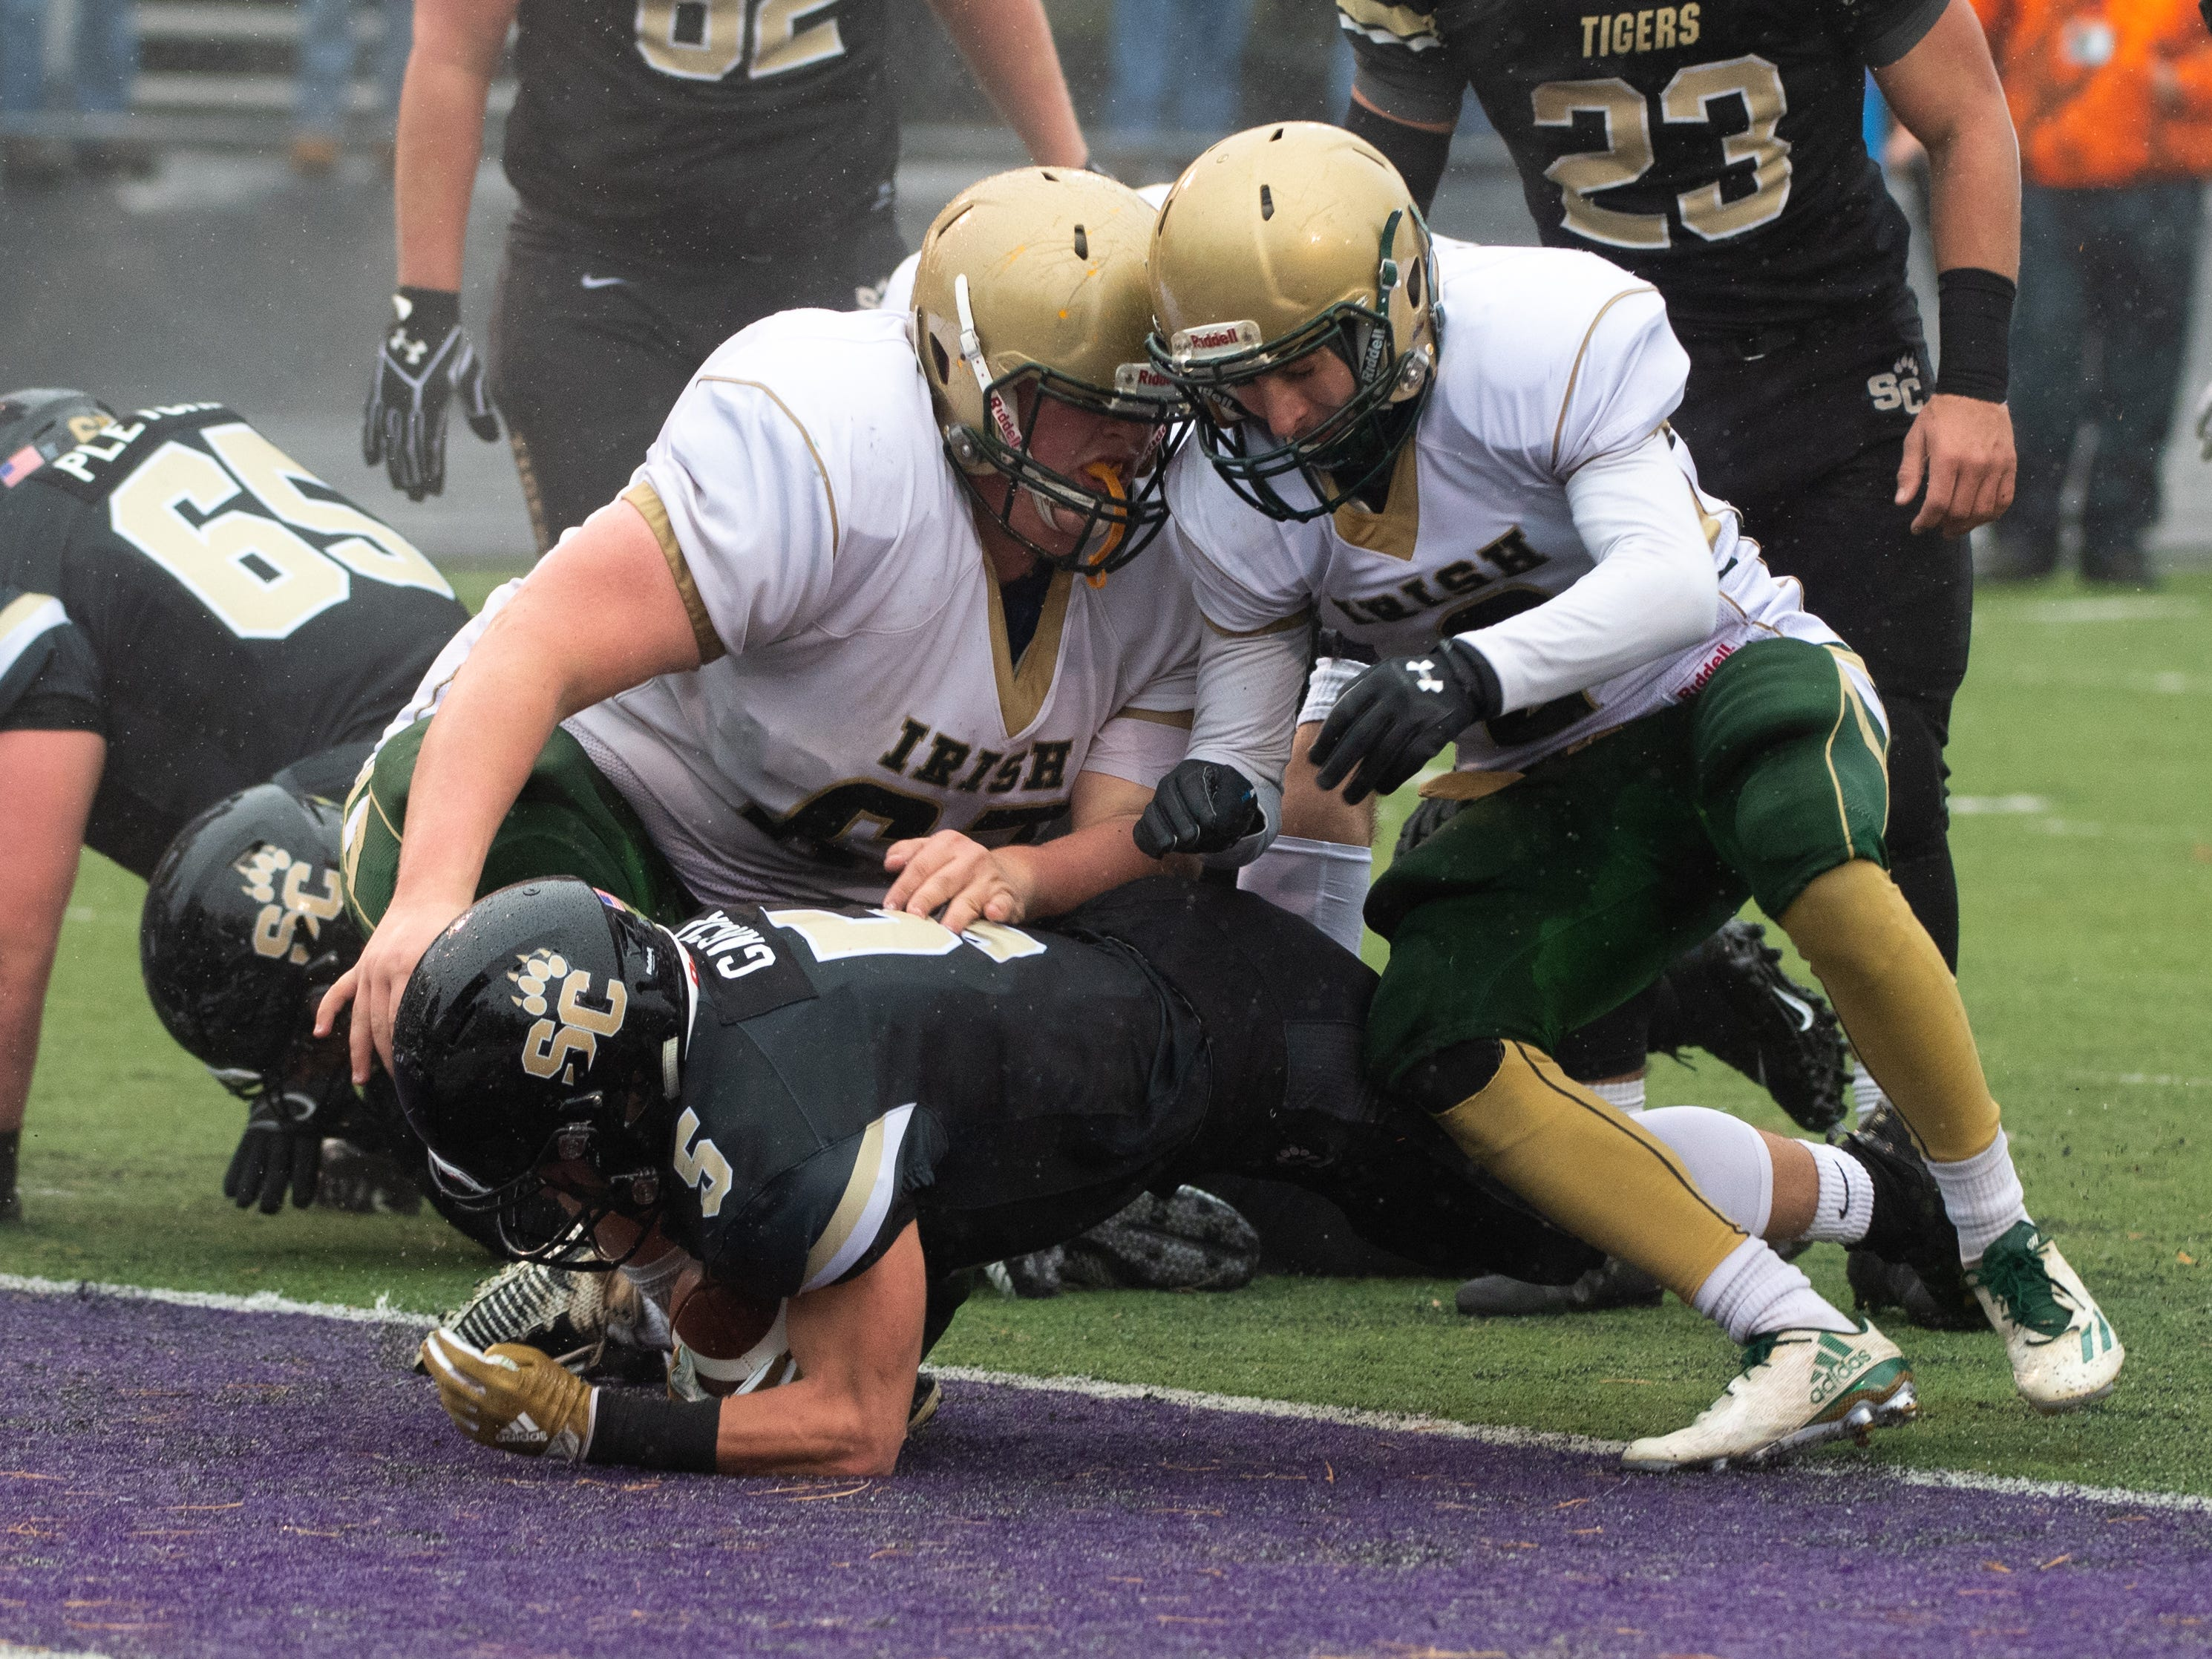 Gavin Garcia (5) stretches into the end zone during the state quarter-finals game between York Catholic and Southern Columbia at Shamokin Area High School, November 24, 2018. The Tigers defeated the Irish 56-23.